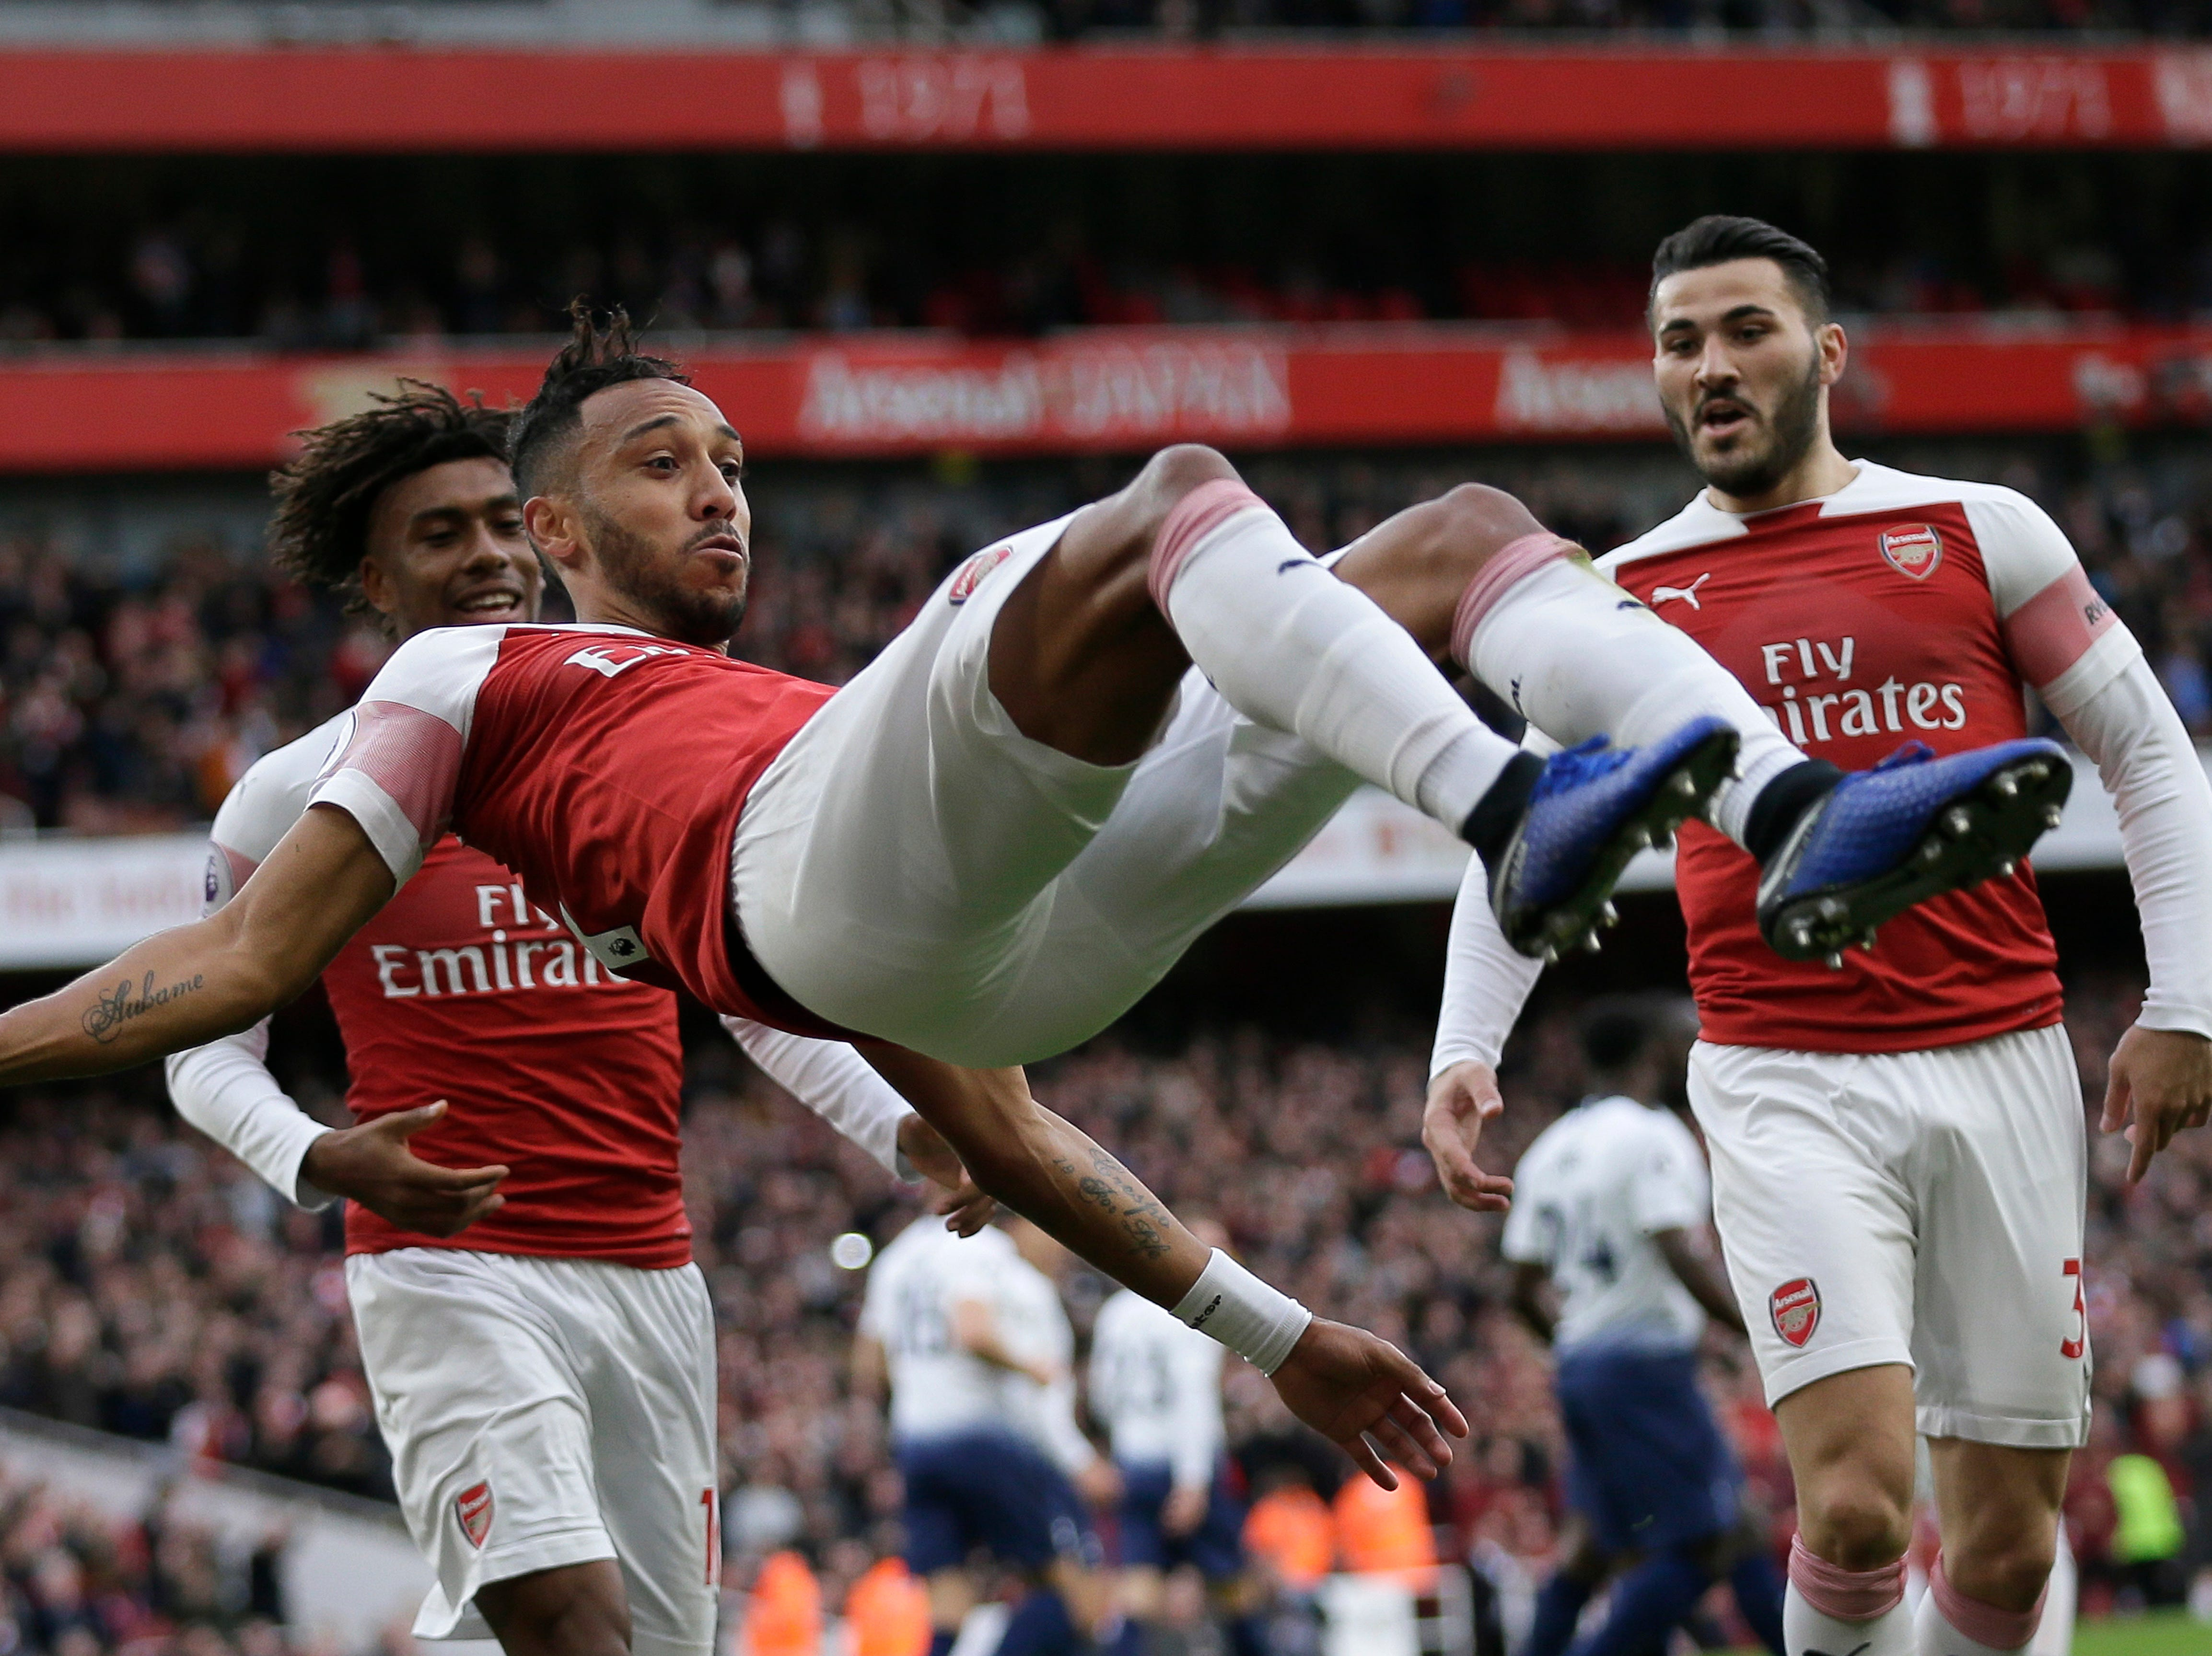 Arsenal's Pierre-Emerick Aubameyang celebrates with his teammates after scoring his side's opening goal against Tottenham.